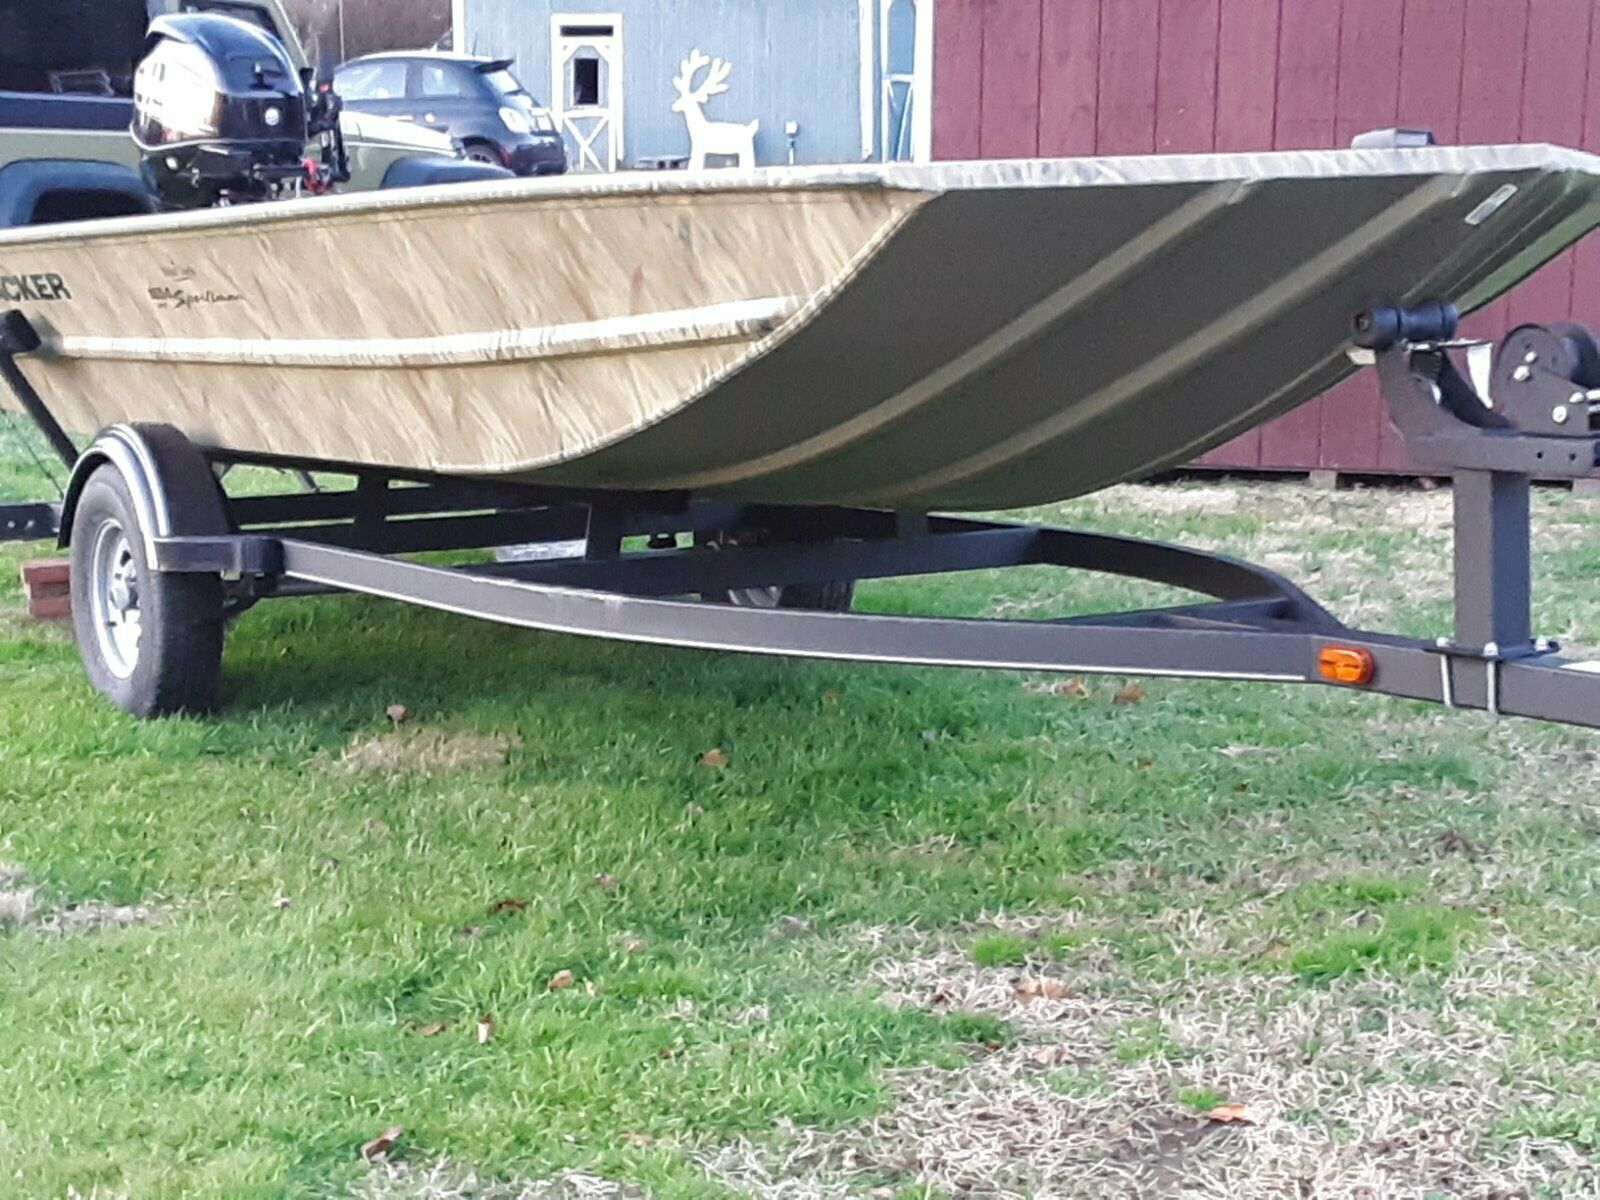 1654 Grizzly JON Boat Grizzly Jon Boat 2018 for sale for $7,500